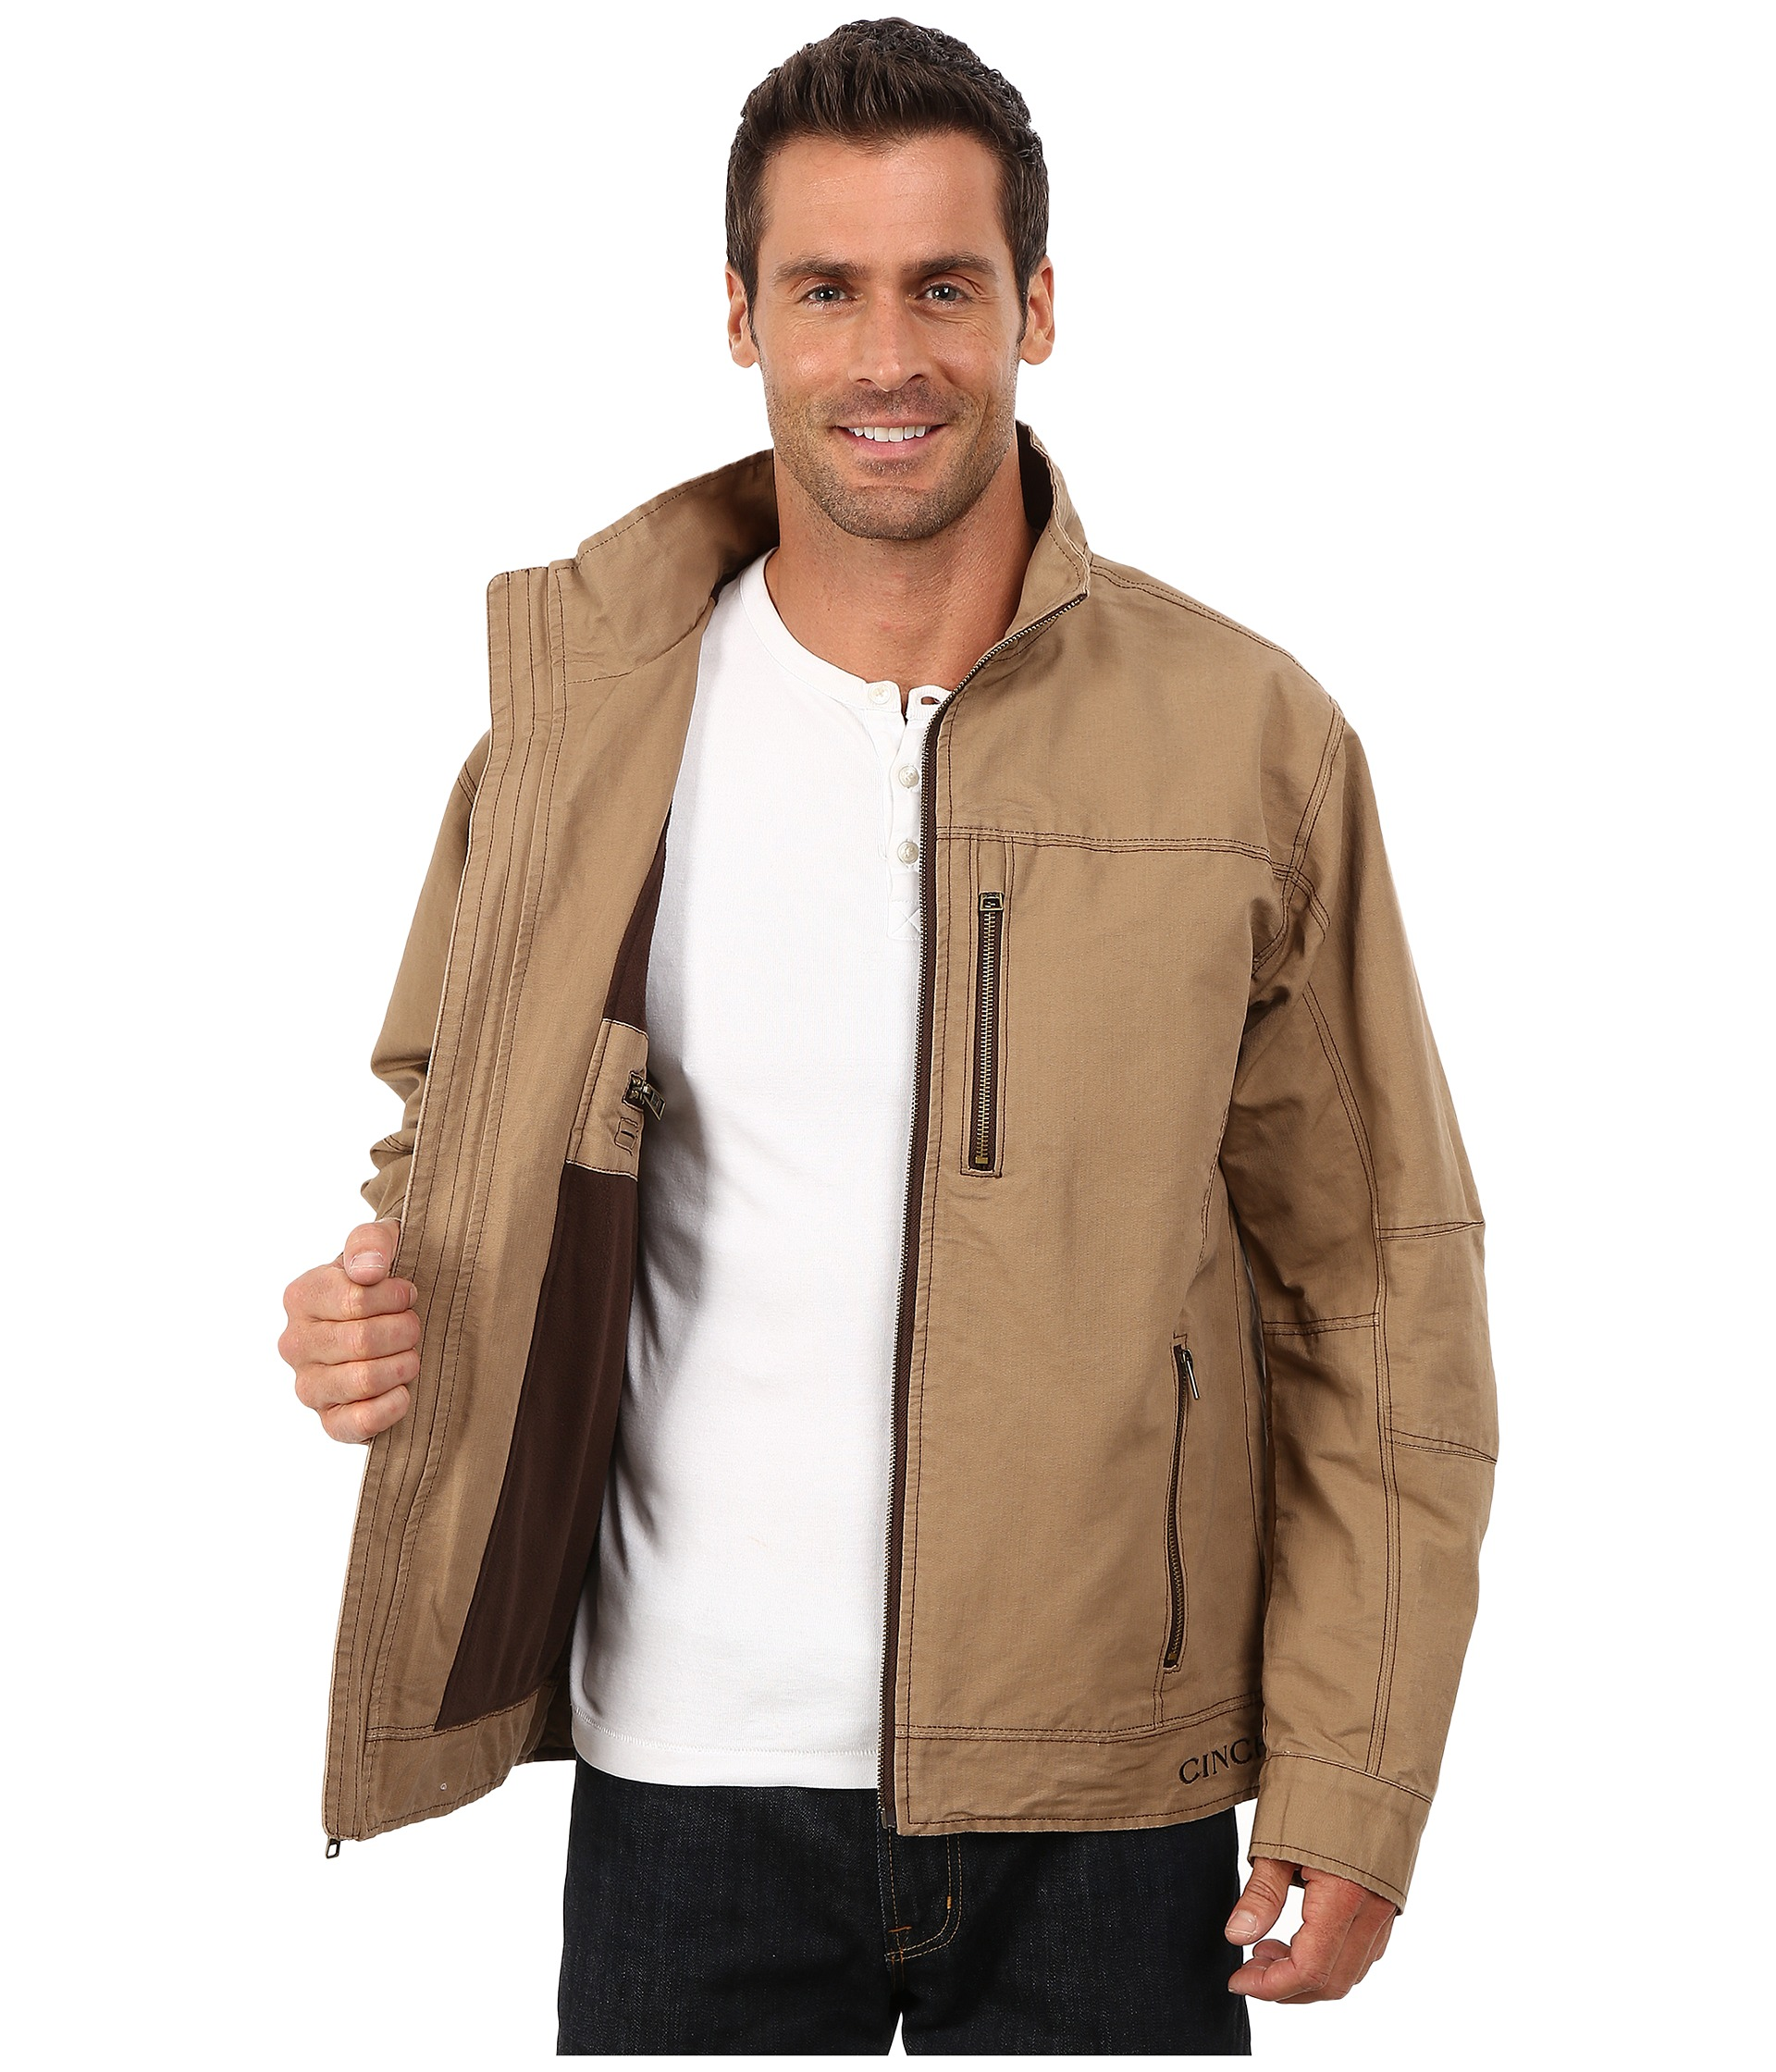 cinch twill canvas jacket Governmental Organization Logos Clothing Brand Logo with Yellow and Black Hand